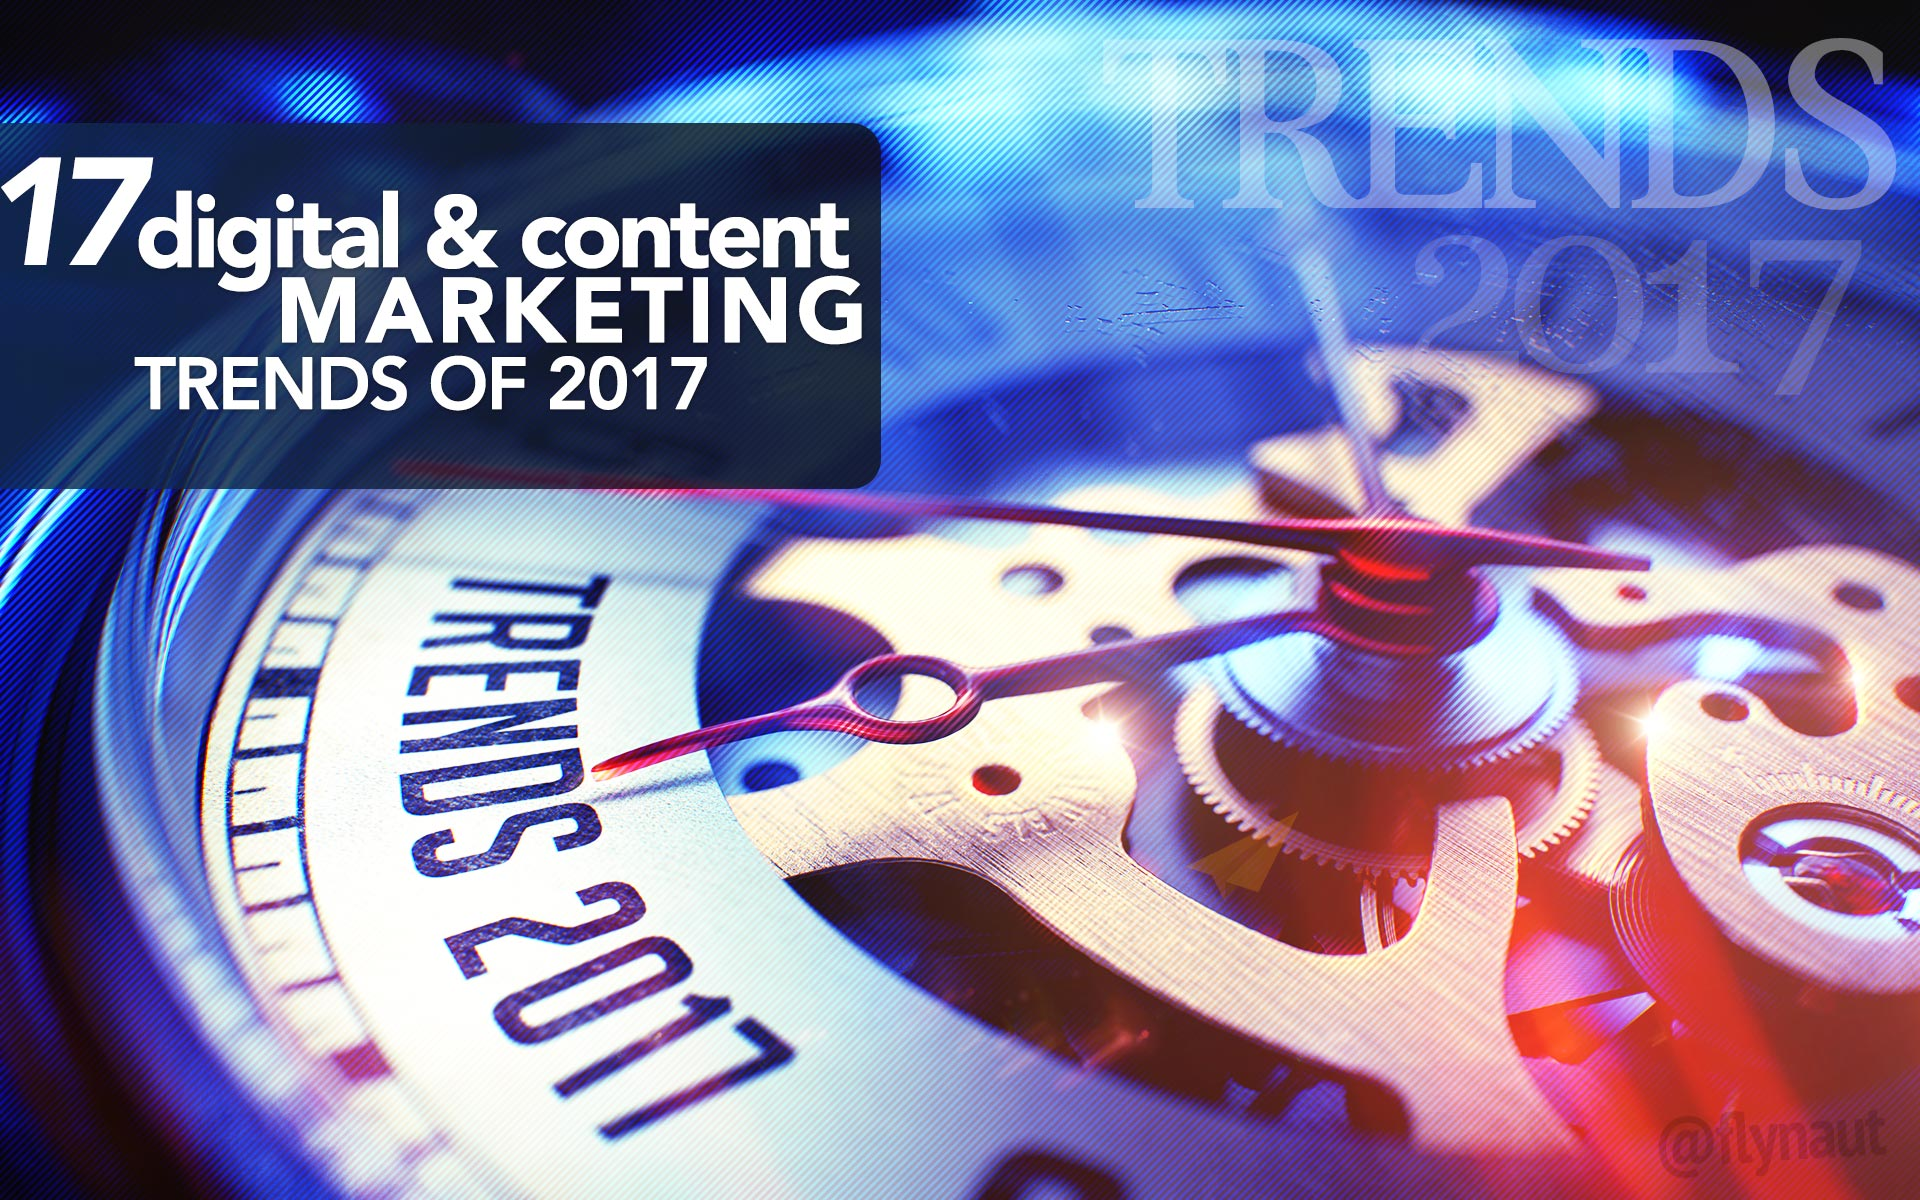 17 Digital and Content Marketing Trends for 2017